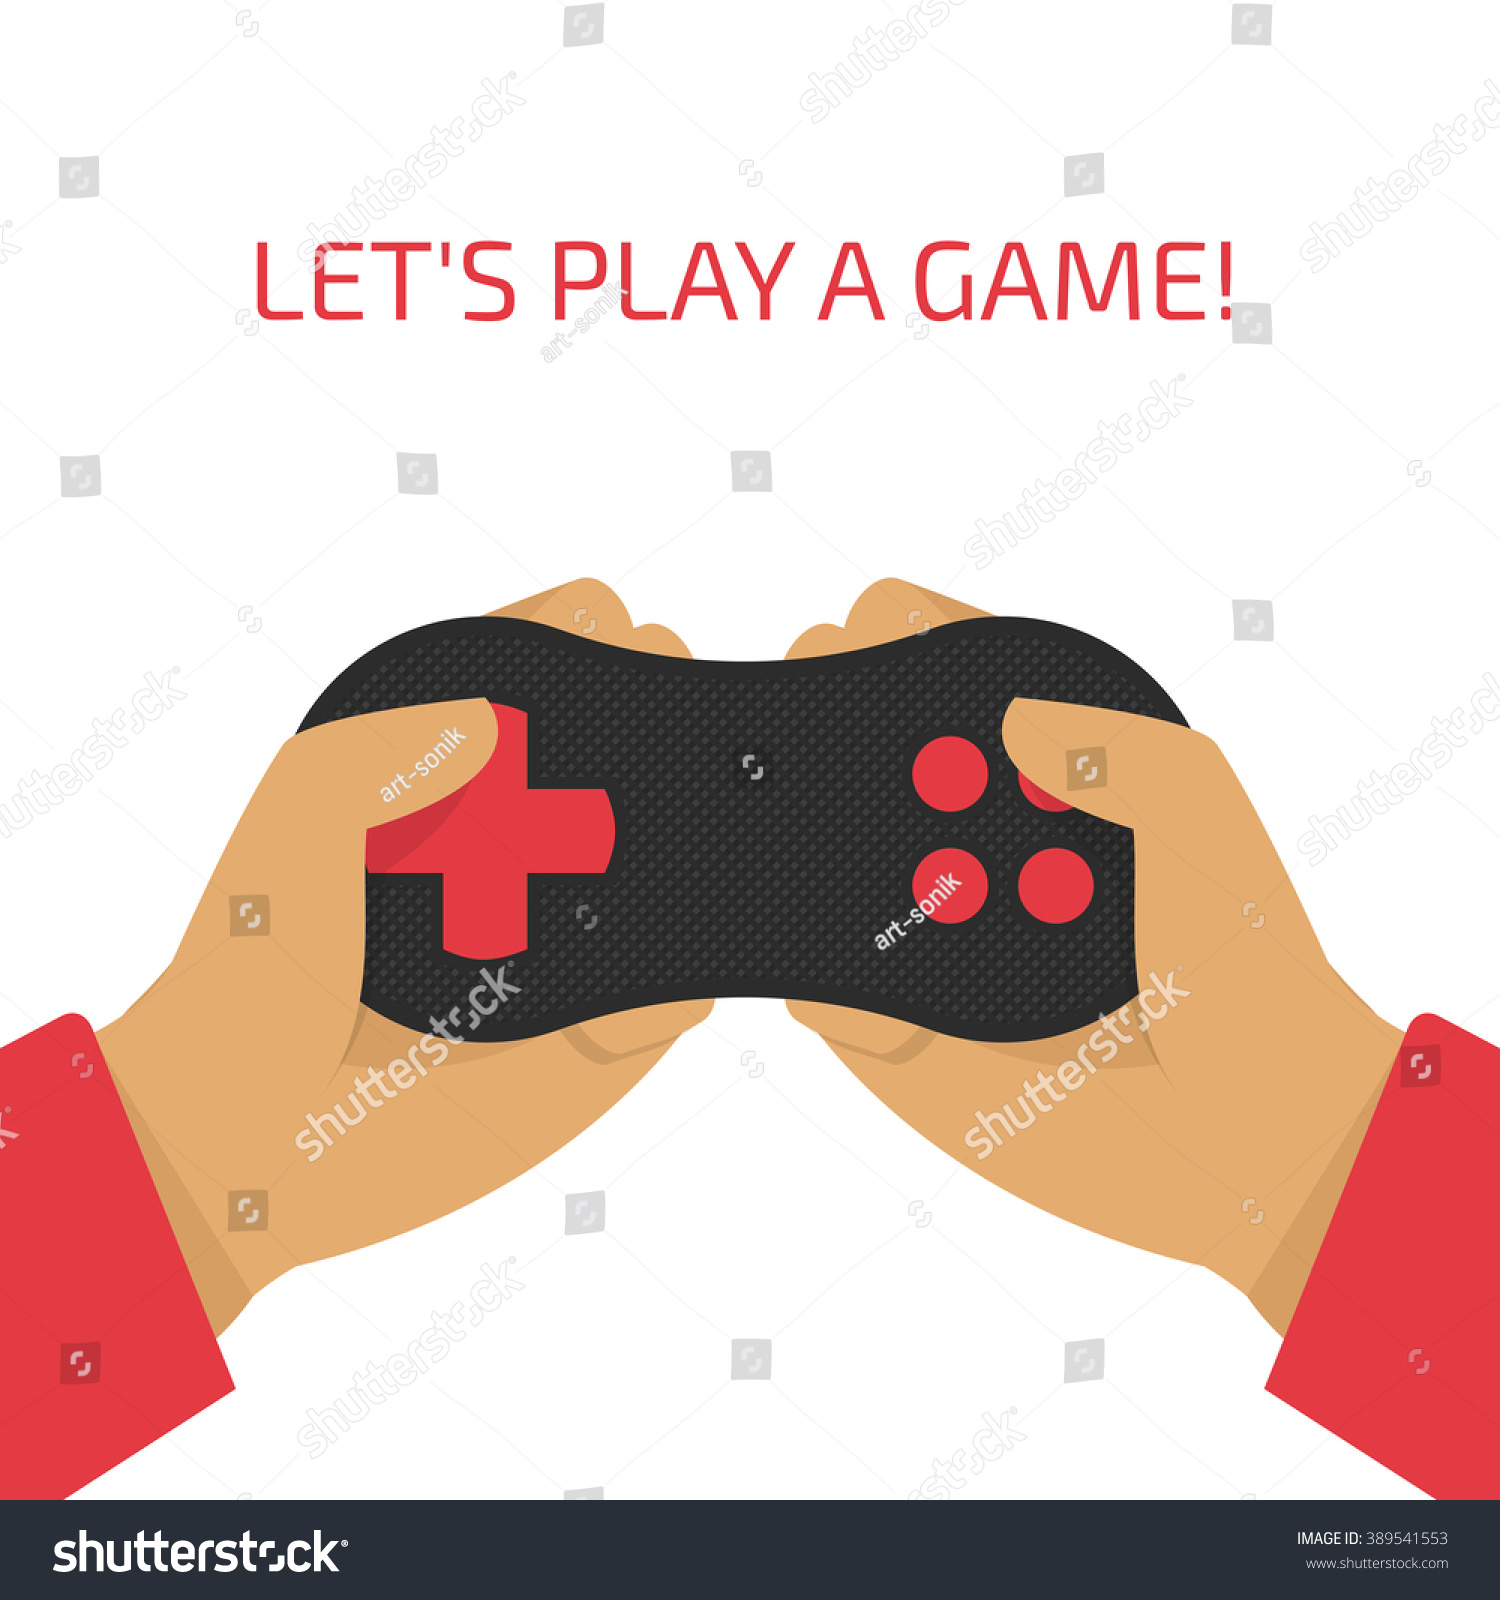 Vector Illustration Game Joystick Their Hands Stock Royalty Double Pad Transparant Wellcome Of A In Gamer Holding Gamepad